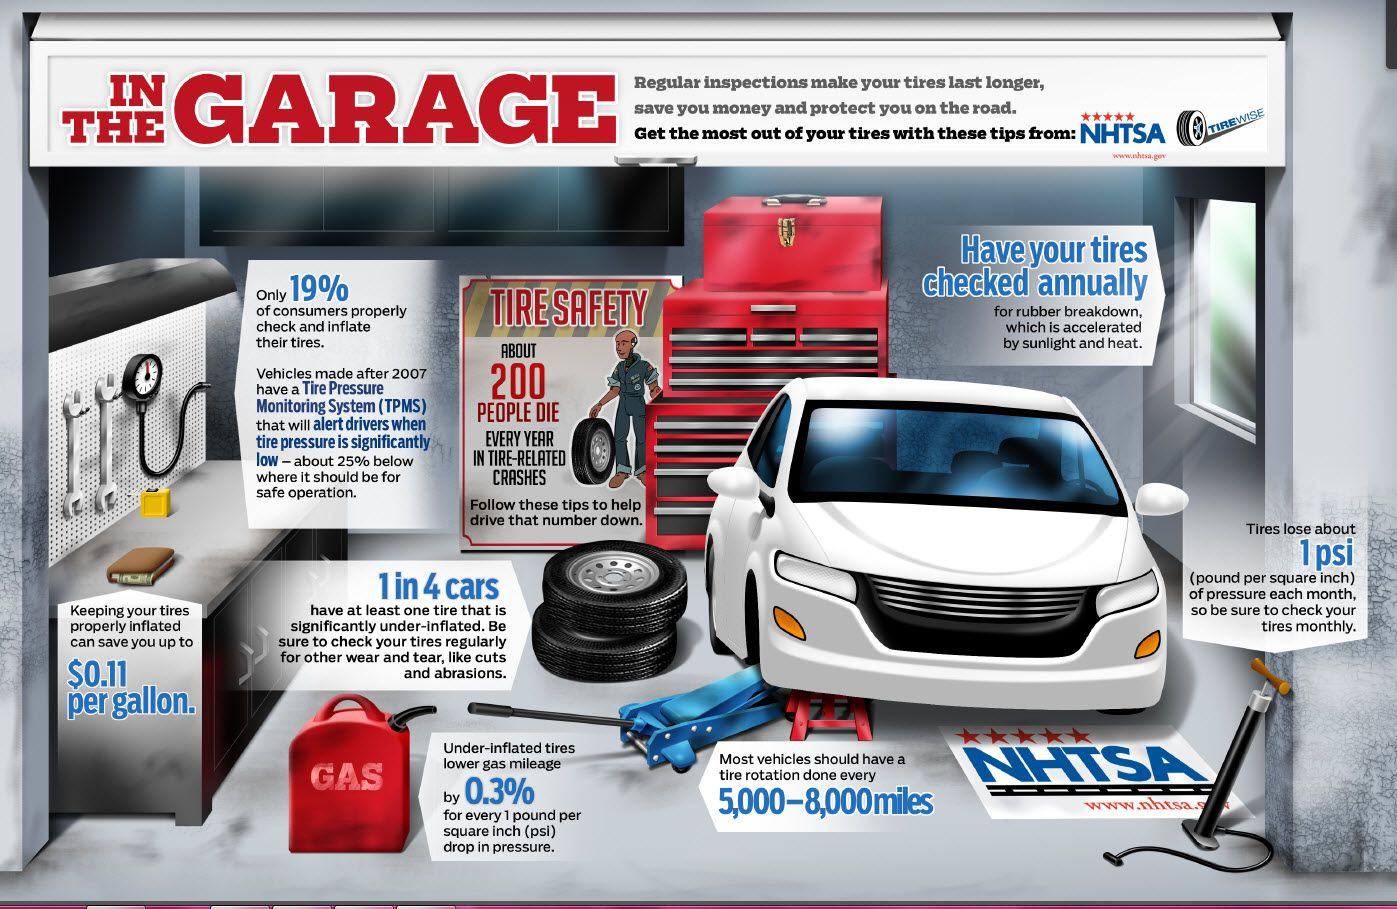 National Tire Safety Week Tire safety, Car